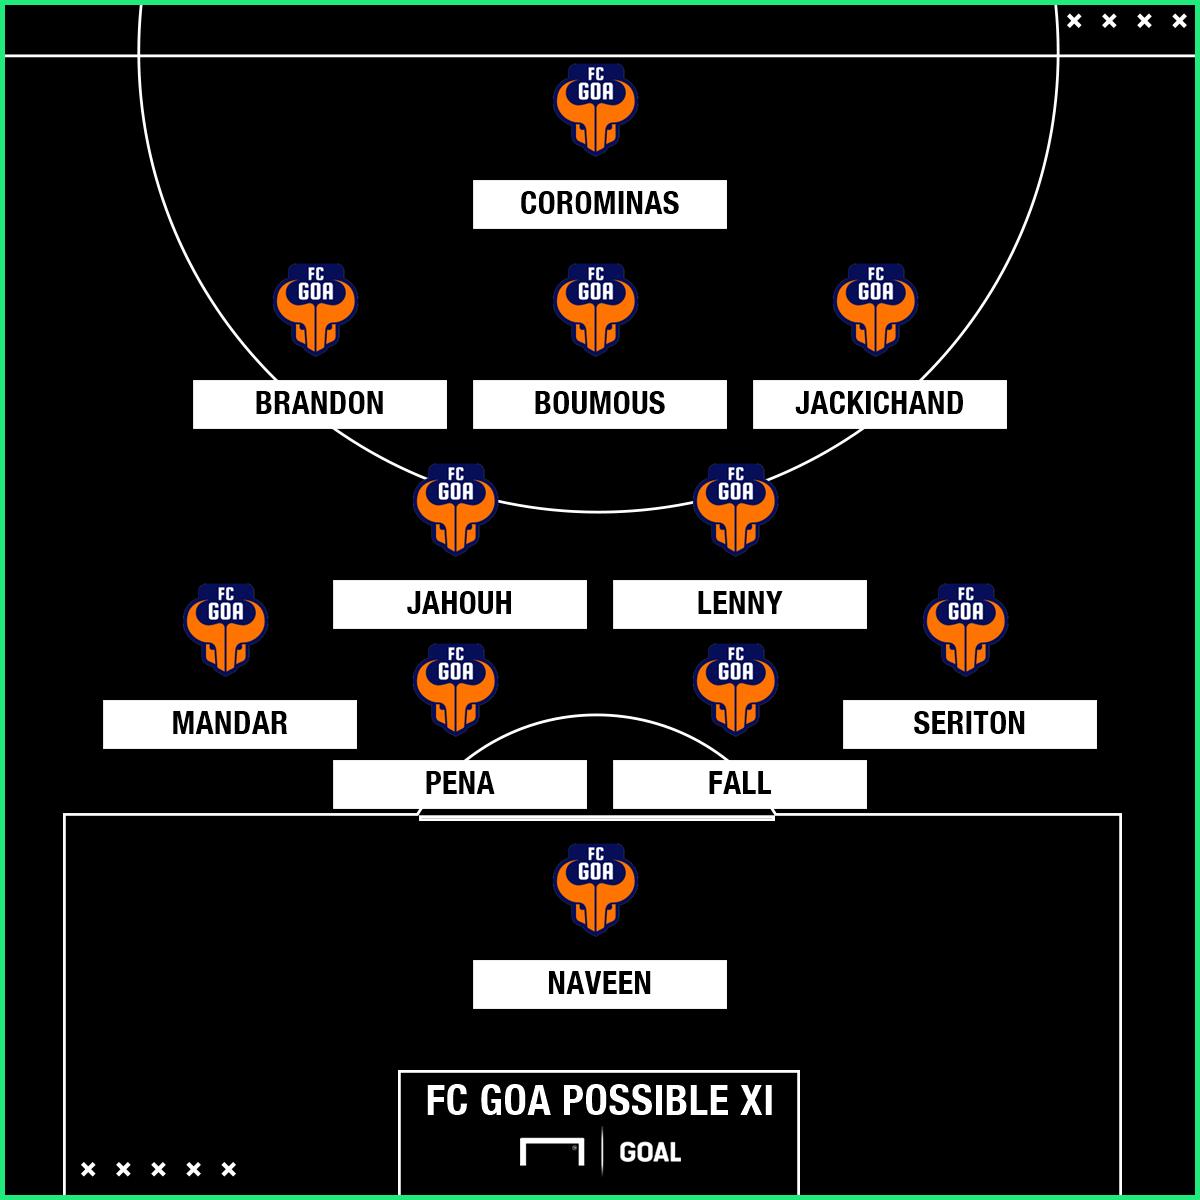 Goa Possible Xi